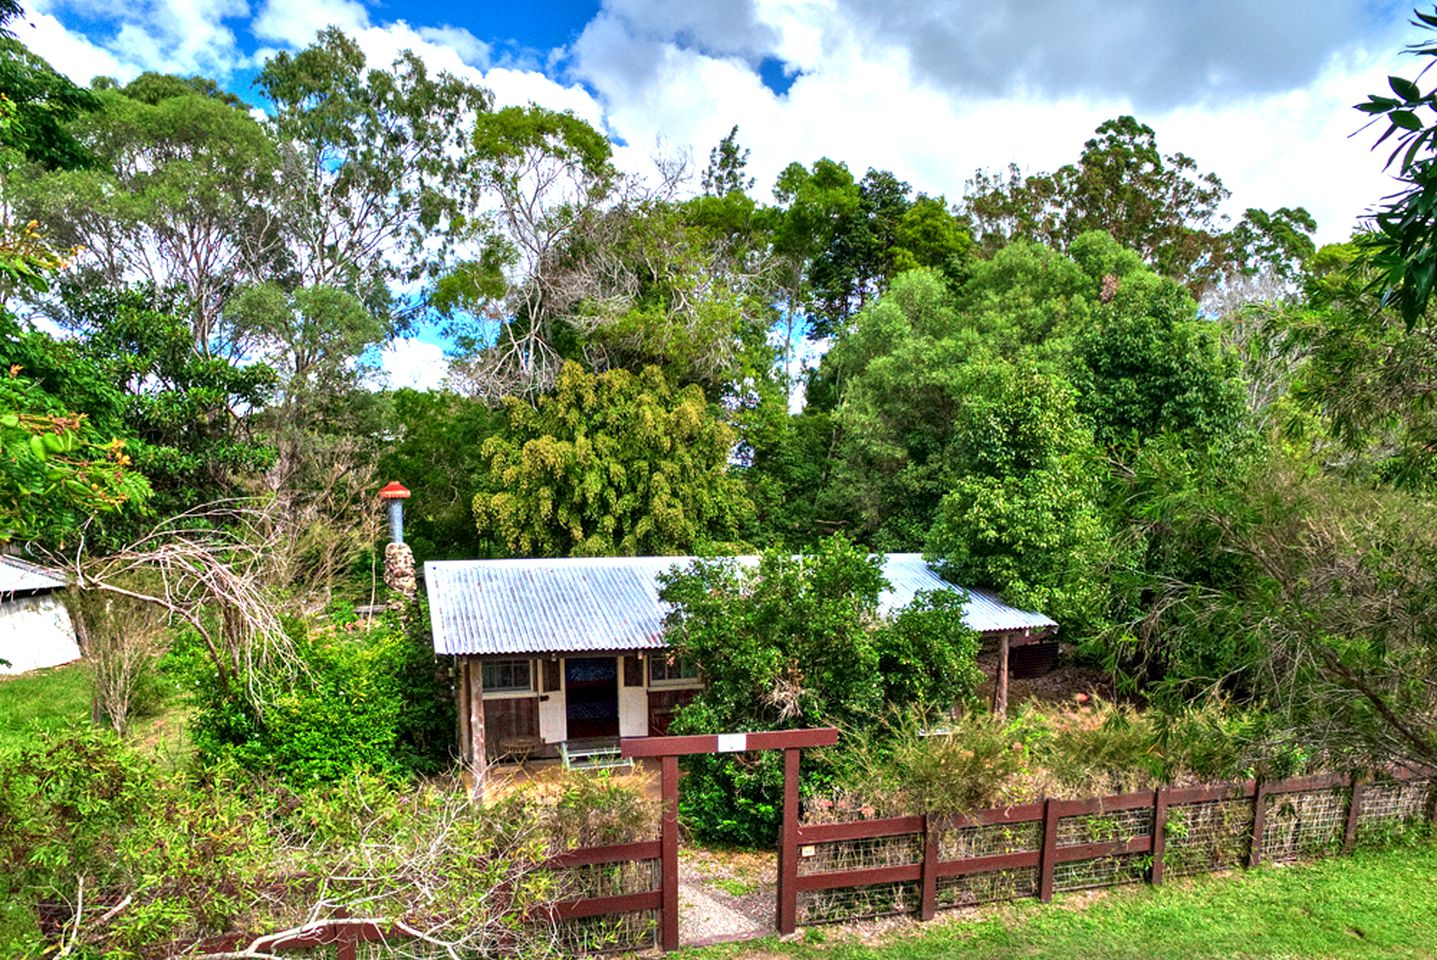 Cottages (Pomona, Queensland, Australia)